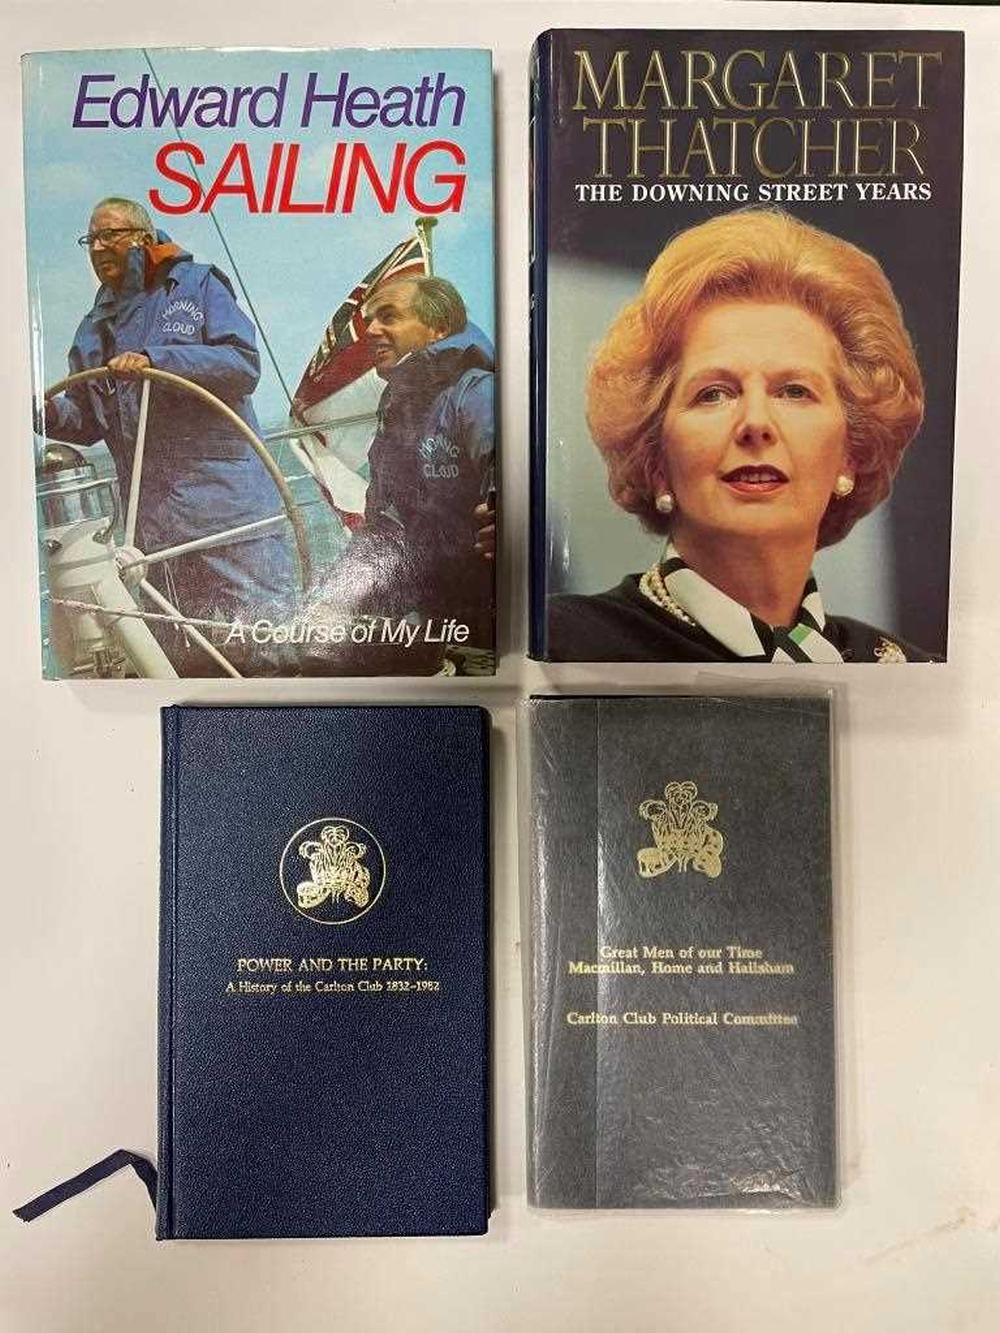 THATCHER (Margaret) The Downing Street Years, 1st edition 1993, signed by Margaret and Denis Thatcher, dust jacket; Great Men of our Time - Macmillan, Home and Hailsham, Carlton Club 1987, signed by Home, Hailsham and Willie Whitelaw (?), no....